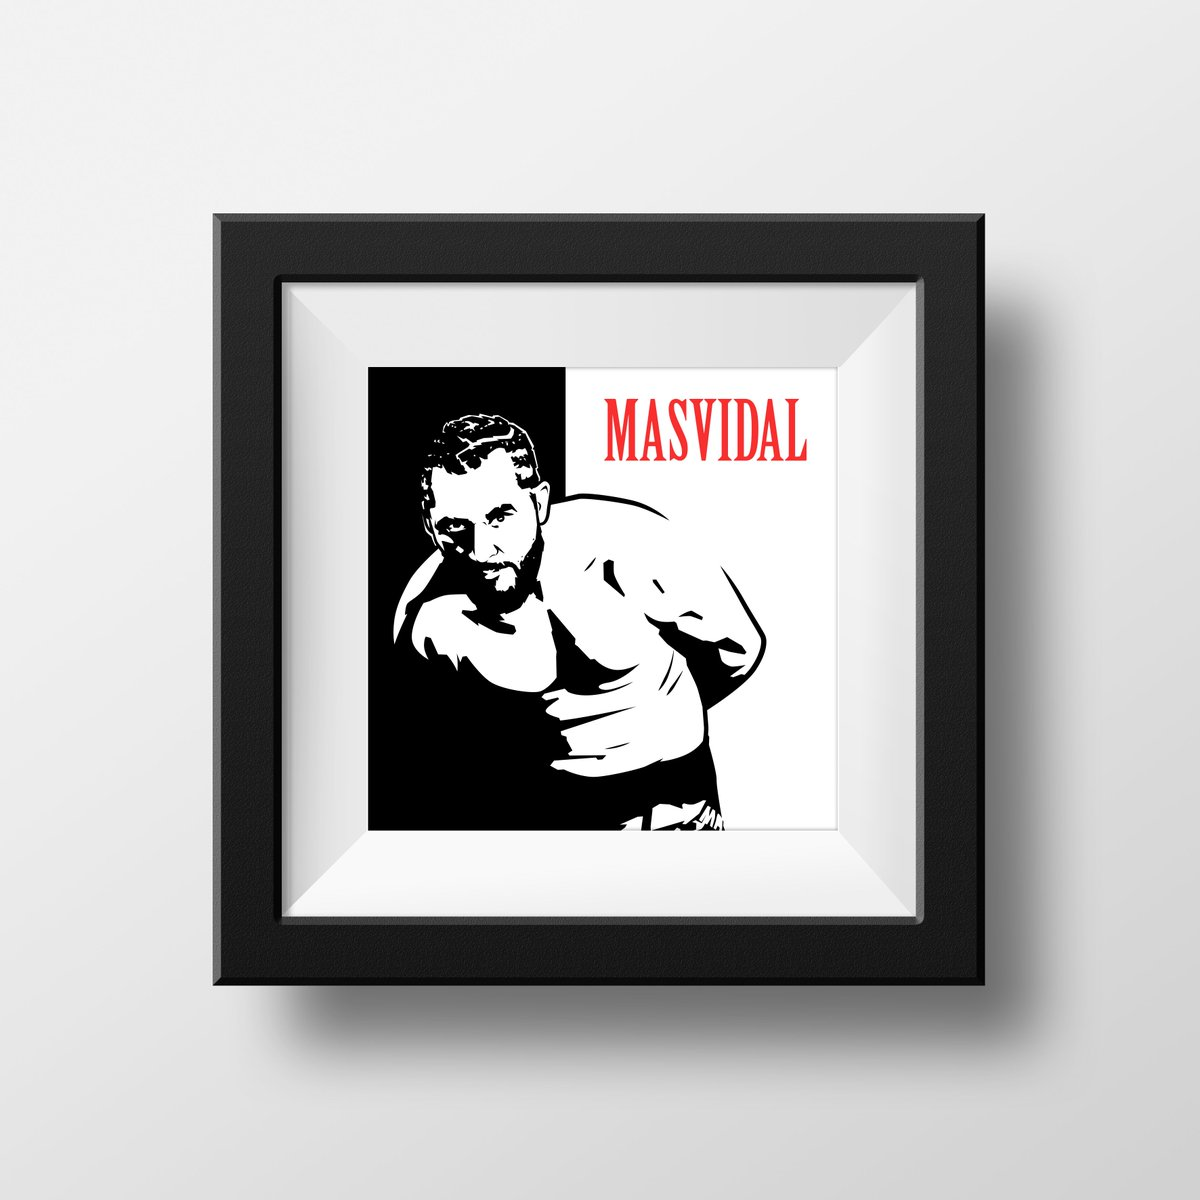 🚨MMA FANS🚨 I bought a new printer and added some new pieces to my shop. Check it out here - etsy.com/shop/sportrait… Ill be adding more prints all the time so keep an eye out! RTs Appreciated